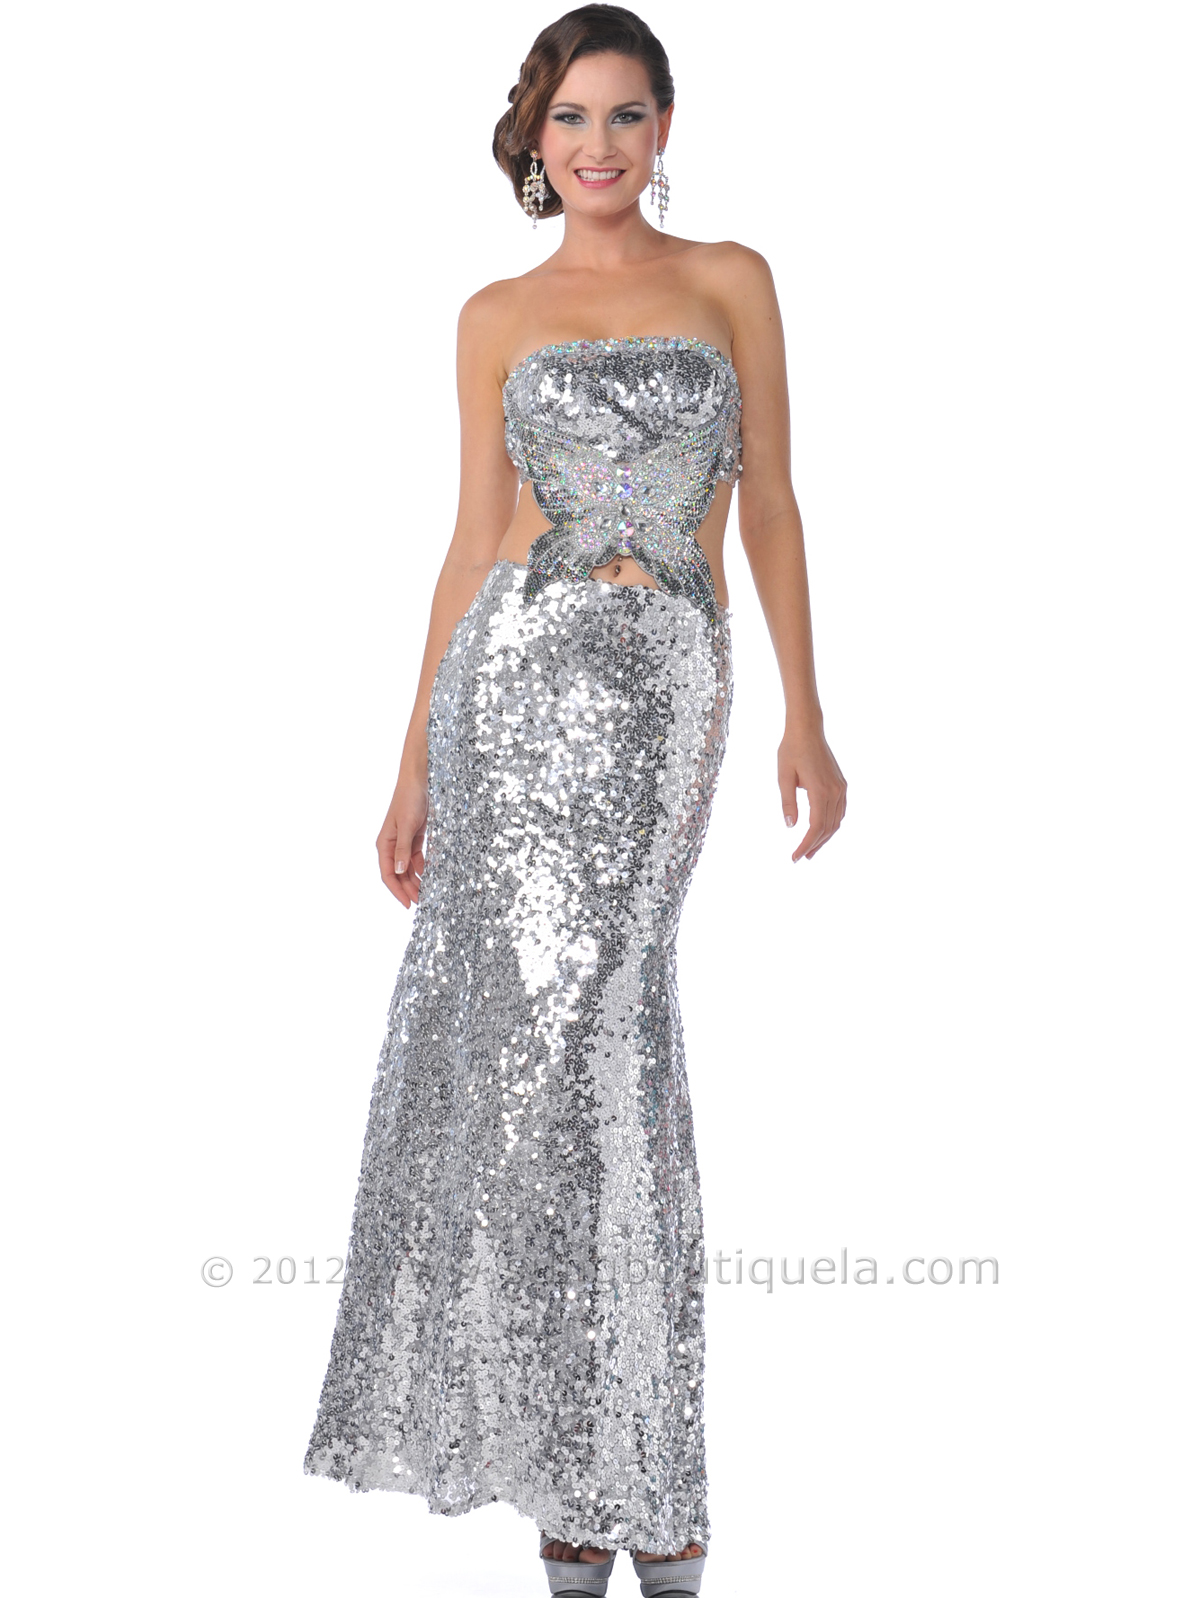 7b996c9fc3 9195 Silver Strapless All Sequin Side Cut-Out Prom Dress - Silver